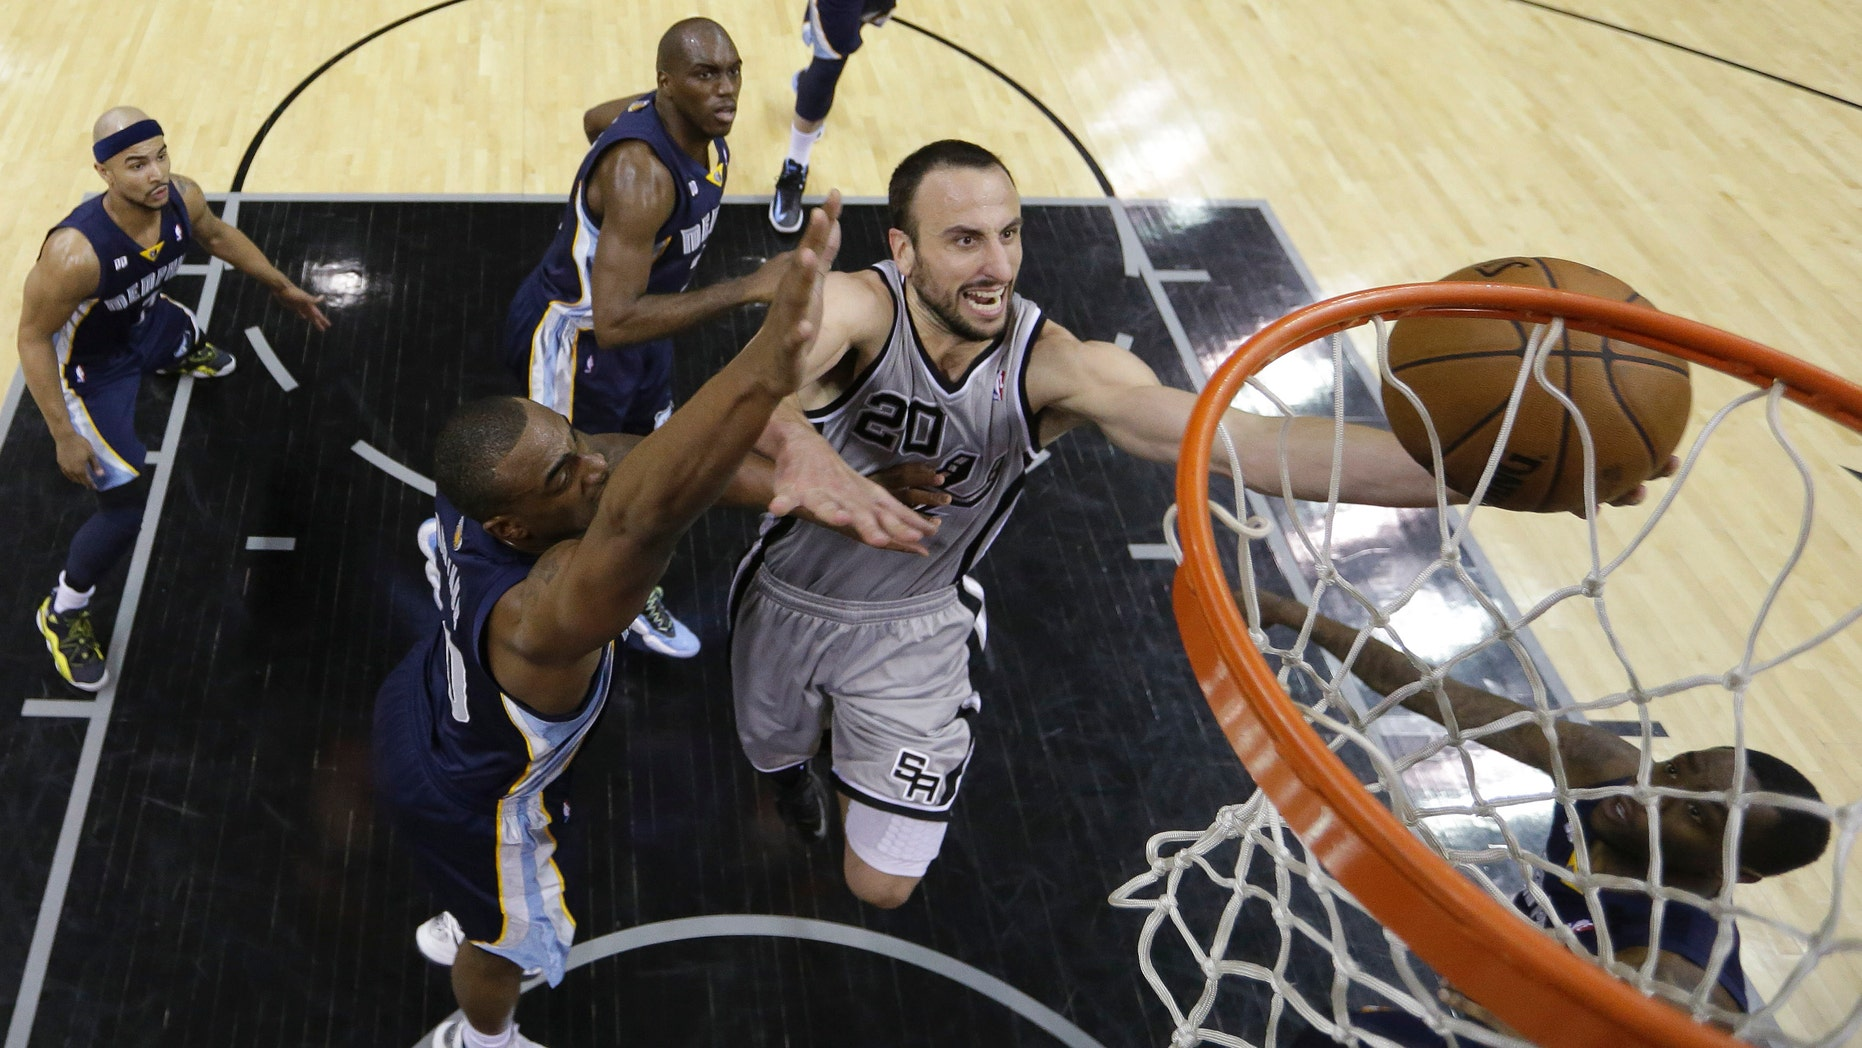 San Antonio Spurs' Manu Ginobili (20), of Argentina, drives to the basket as Memphis Grizzlies' Darrell Arthur, left, defends him during the second half in Game 1 of a Western Conference Finals NBA basketball playoff series, Sunday, May 19, 2013, in San Antonio. San Antonio won 105-83.(AP Photo/Eric Gay)